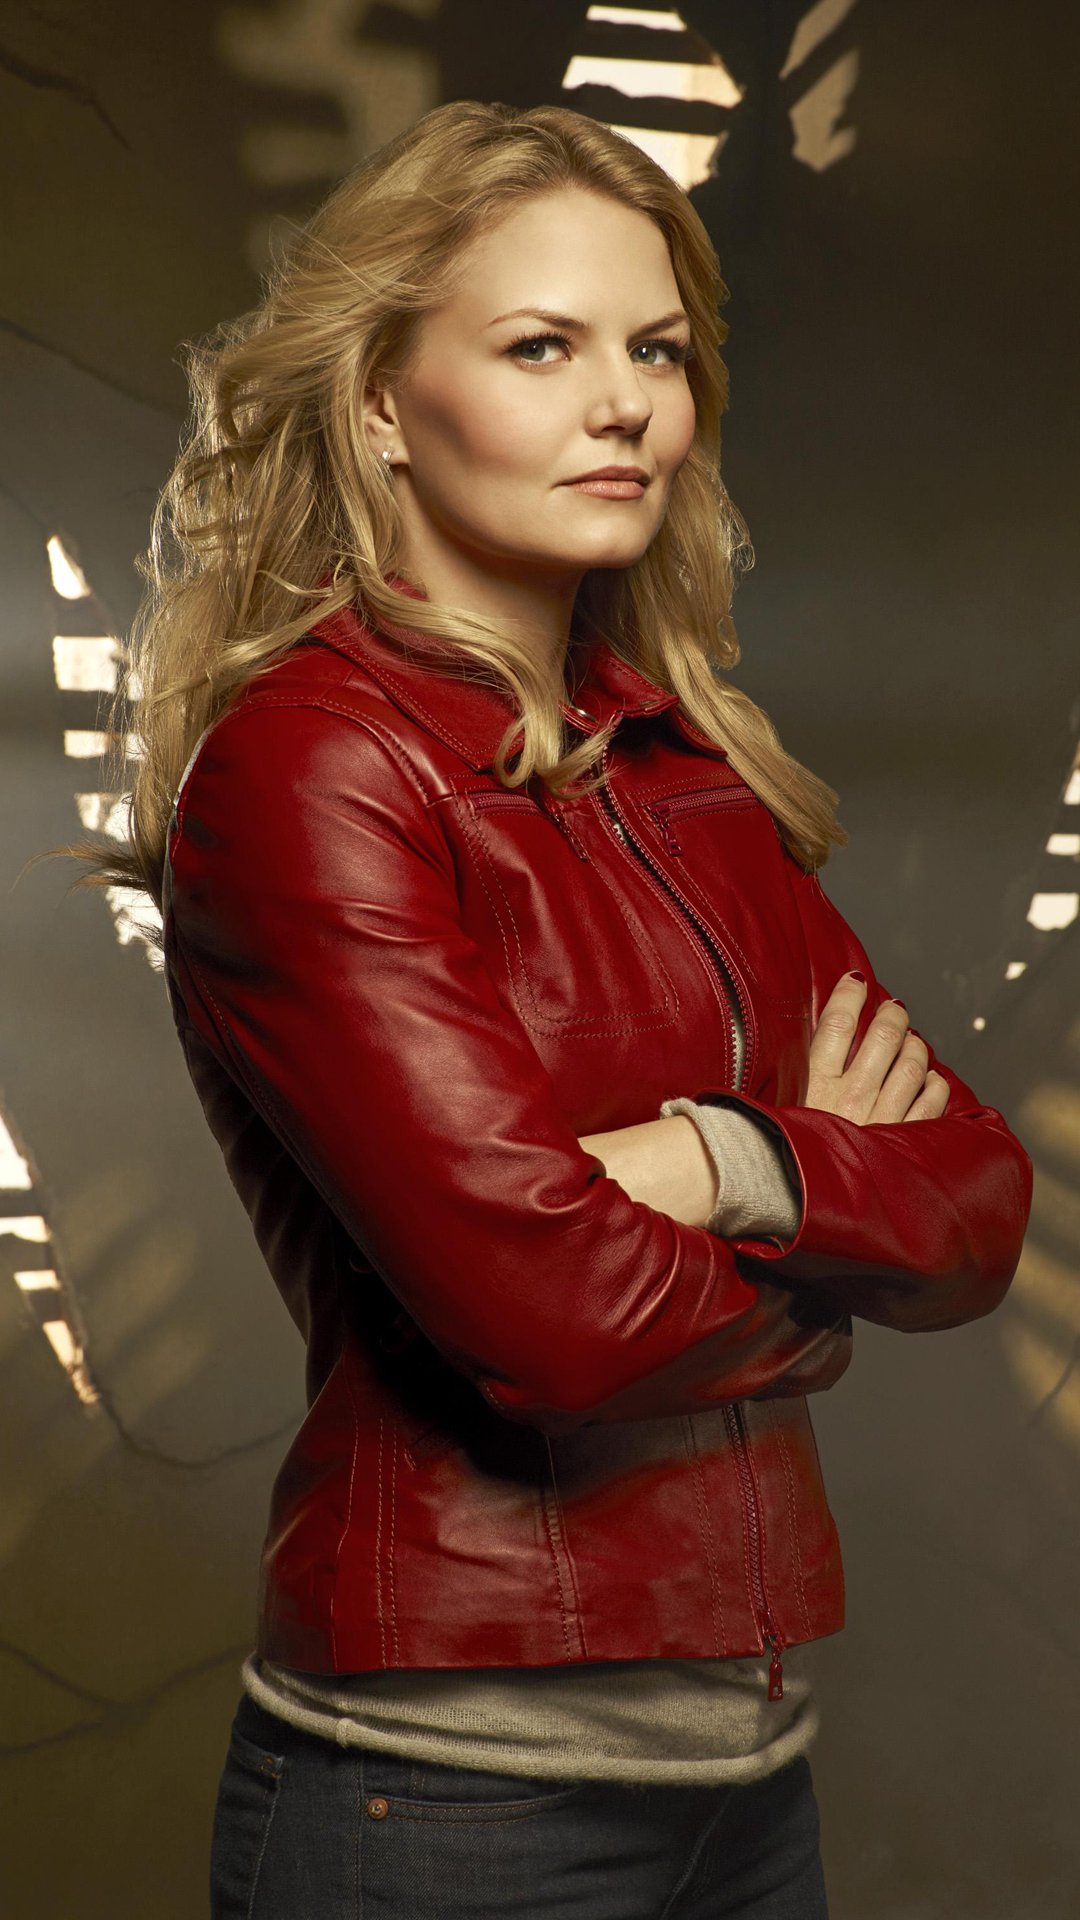 Jennifer Morrison in Red